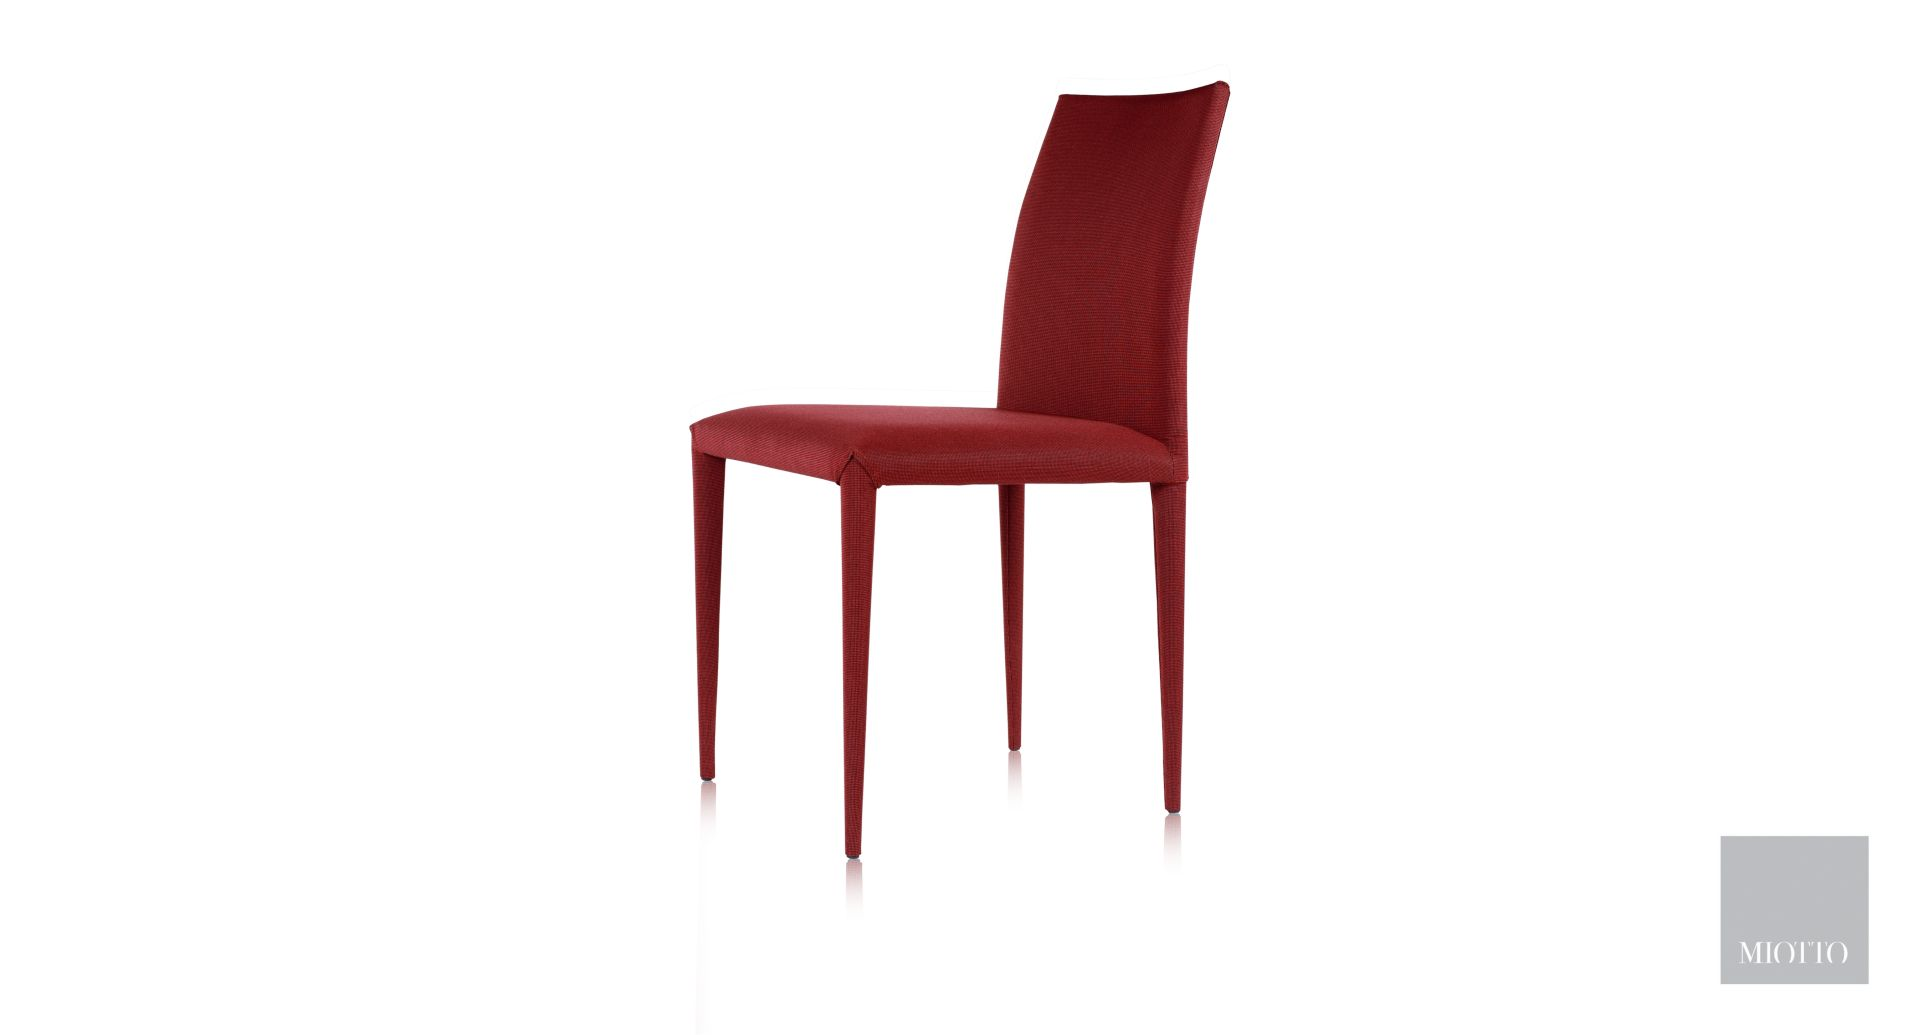 miotto_badia DC red T_web